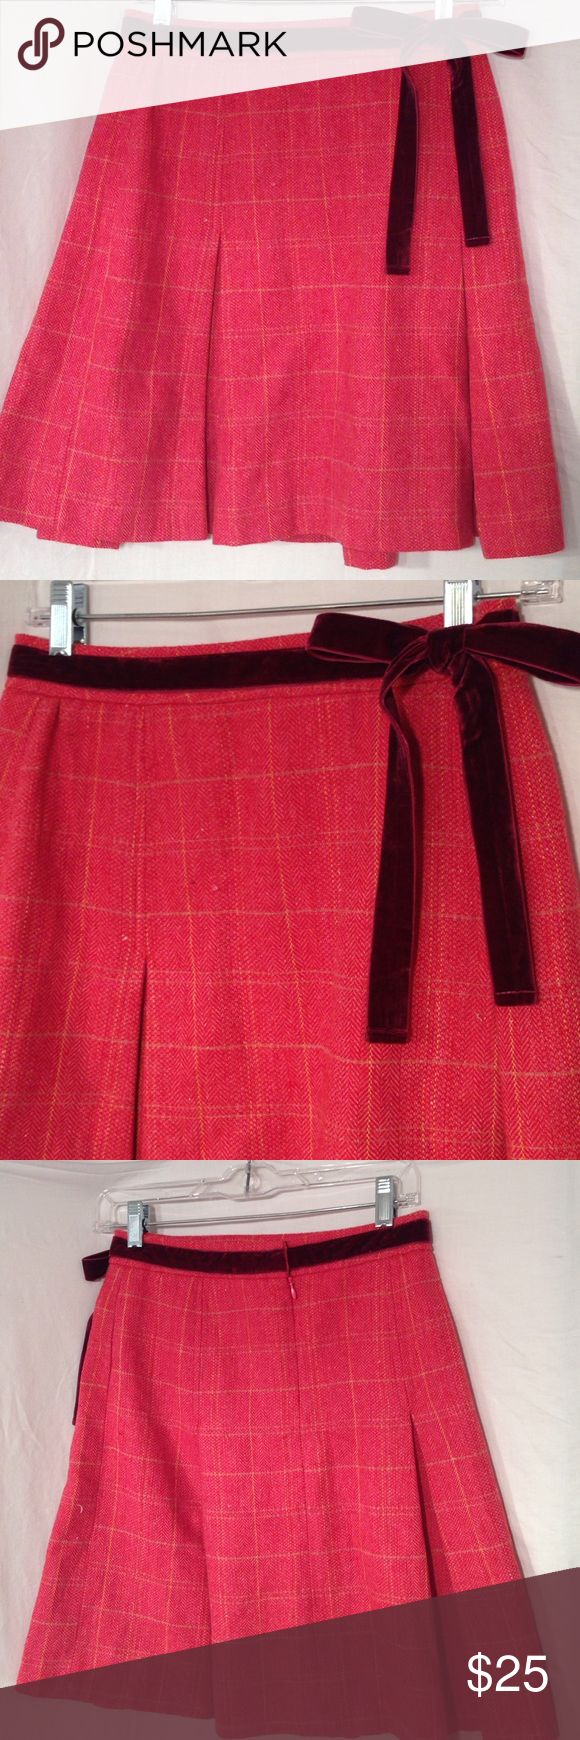 "Downeast Basics pleated skirt Size XXS Super cute pleated skirt with burgundy velvet ribbon and hidden zipper in the back.  Skirt is an orangish red color with pale blue and yellow plaid stripes running through it.  70% cotton 30% wool.  Waist is approx 27"", length is 19.5"". Downeast Basics Skirts"